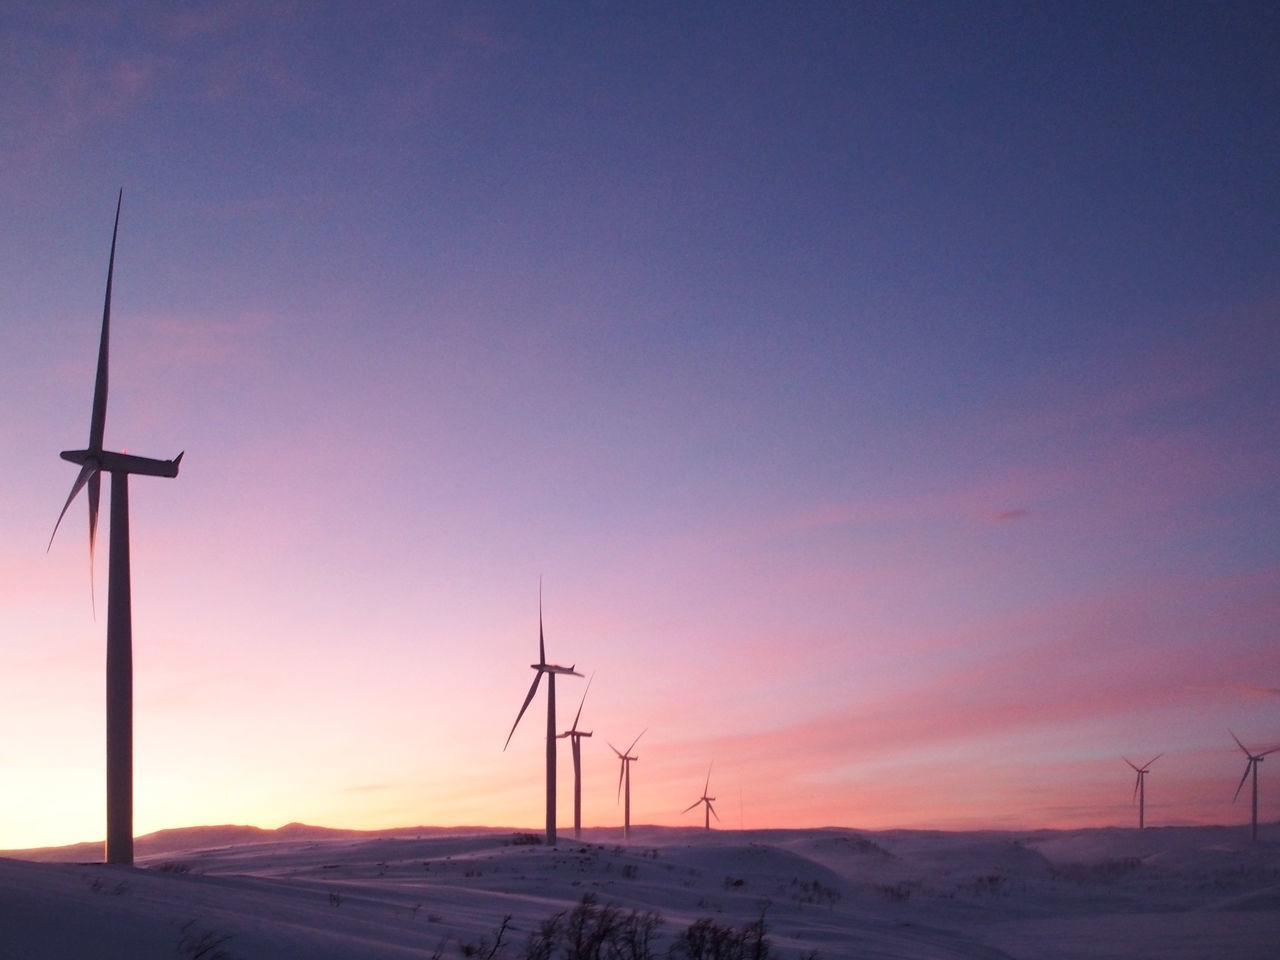 From Abisko to Narvik. Enjoying The View It's Cold Outside Morning No People Outdoors Renewable Energy Showcase: January Sky Snow Sunrise Taking Photos Technology Travel Travel Photography Traveling Wind Turbine Winter My Favorite Photo The Great Outdoors - 2016 EyeEm Awards